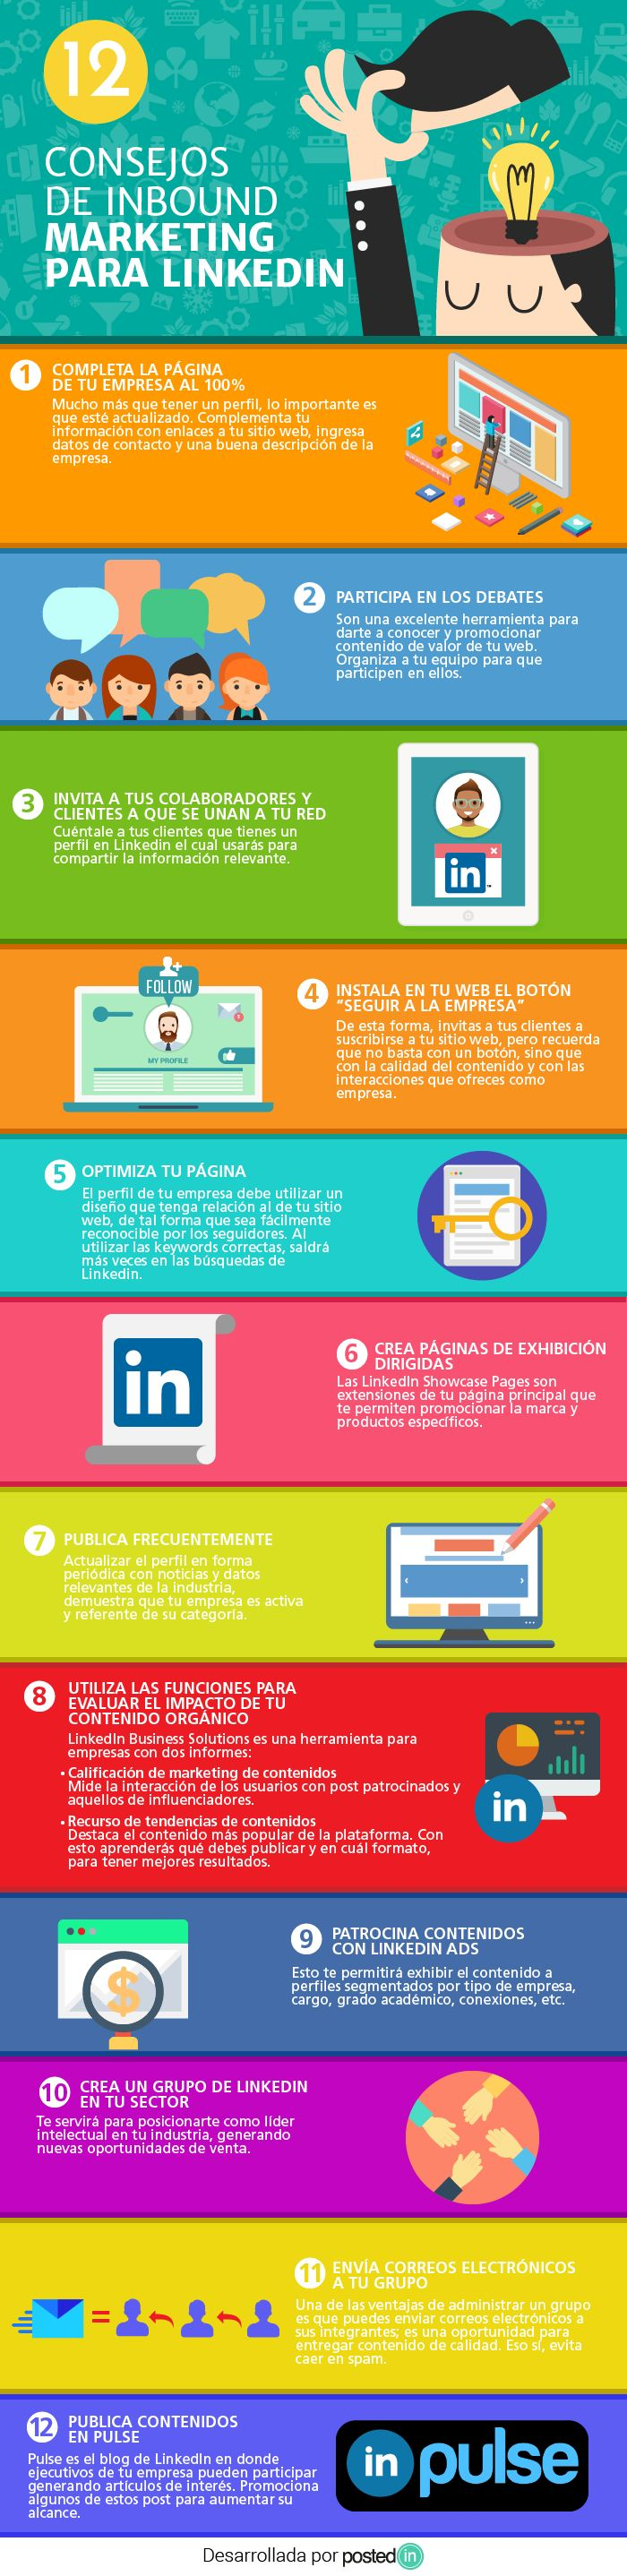 12 consejos de inbound marketing para LinkedIn #SocialMedia #InboundMarketing #LinkedIn